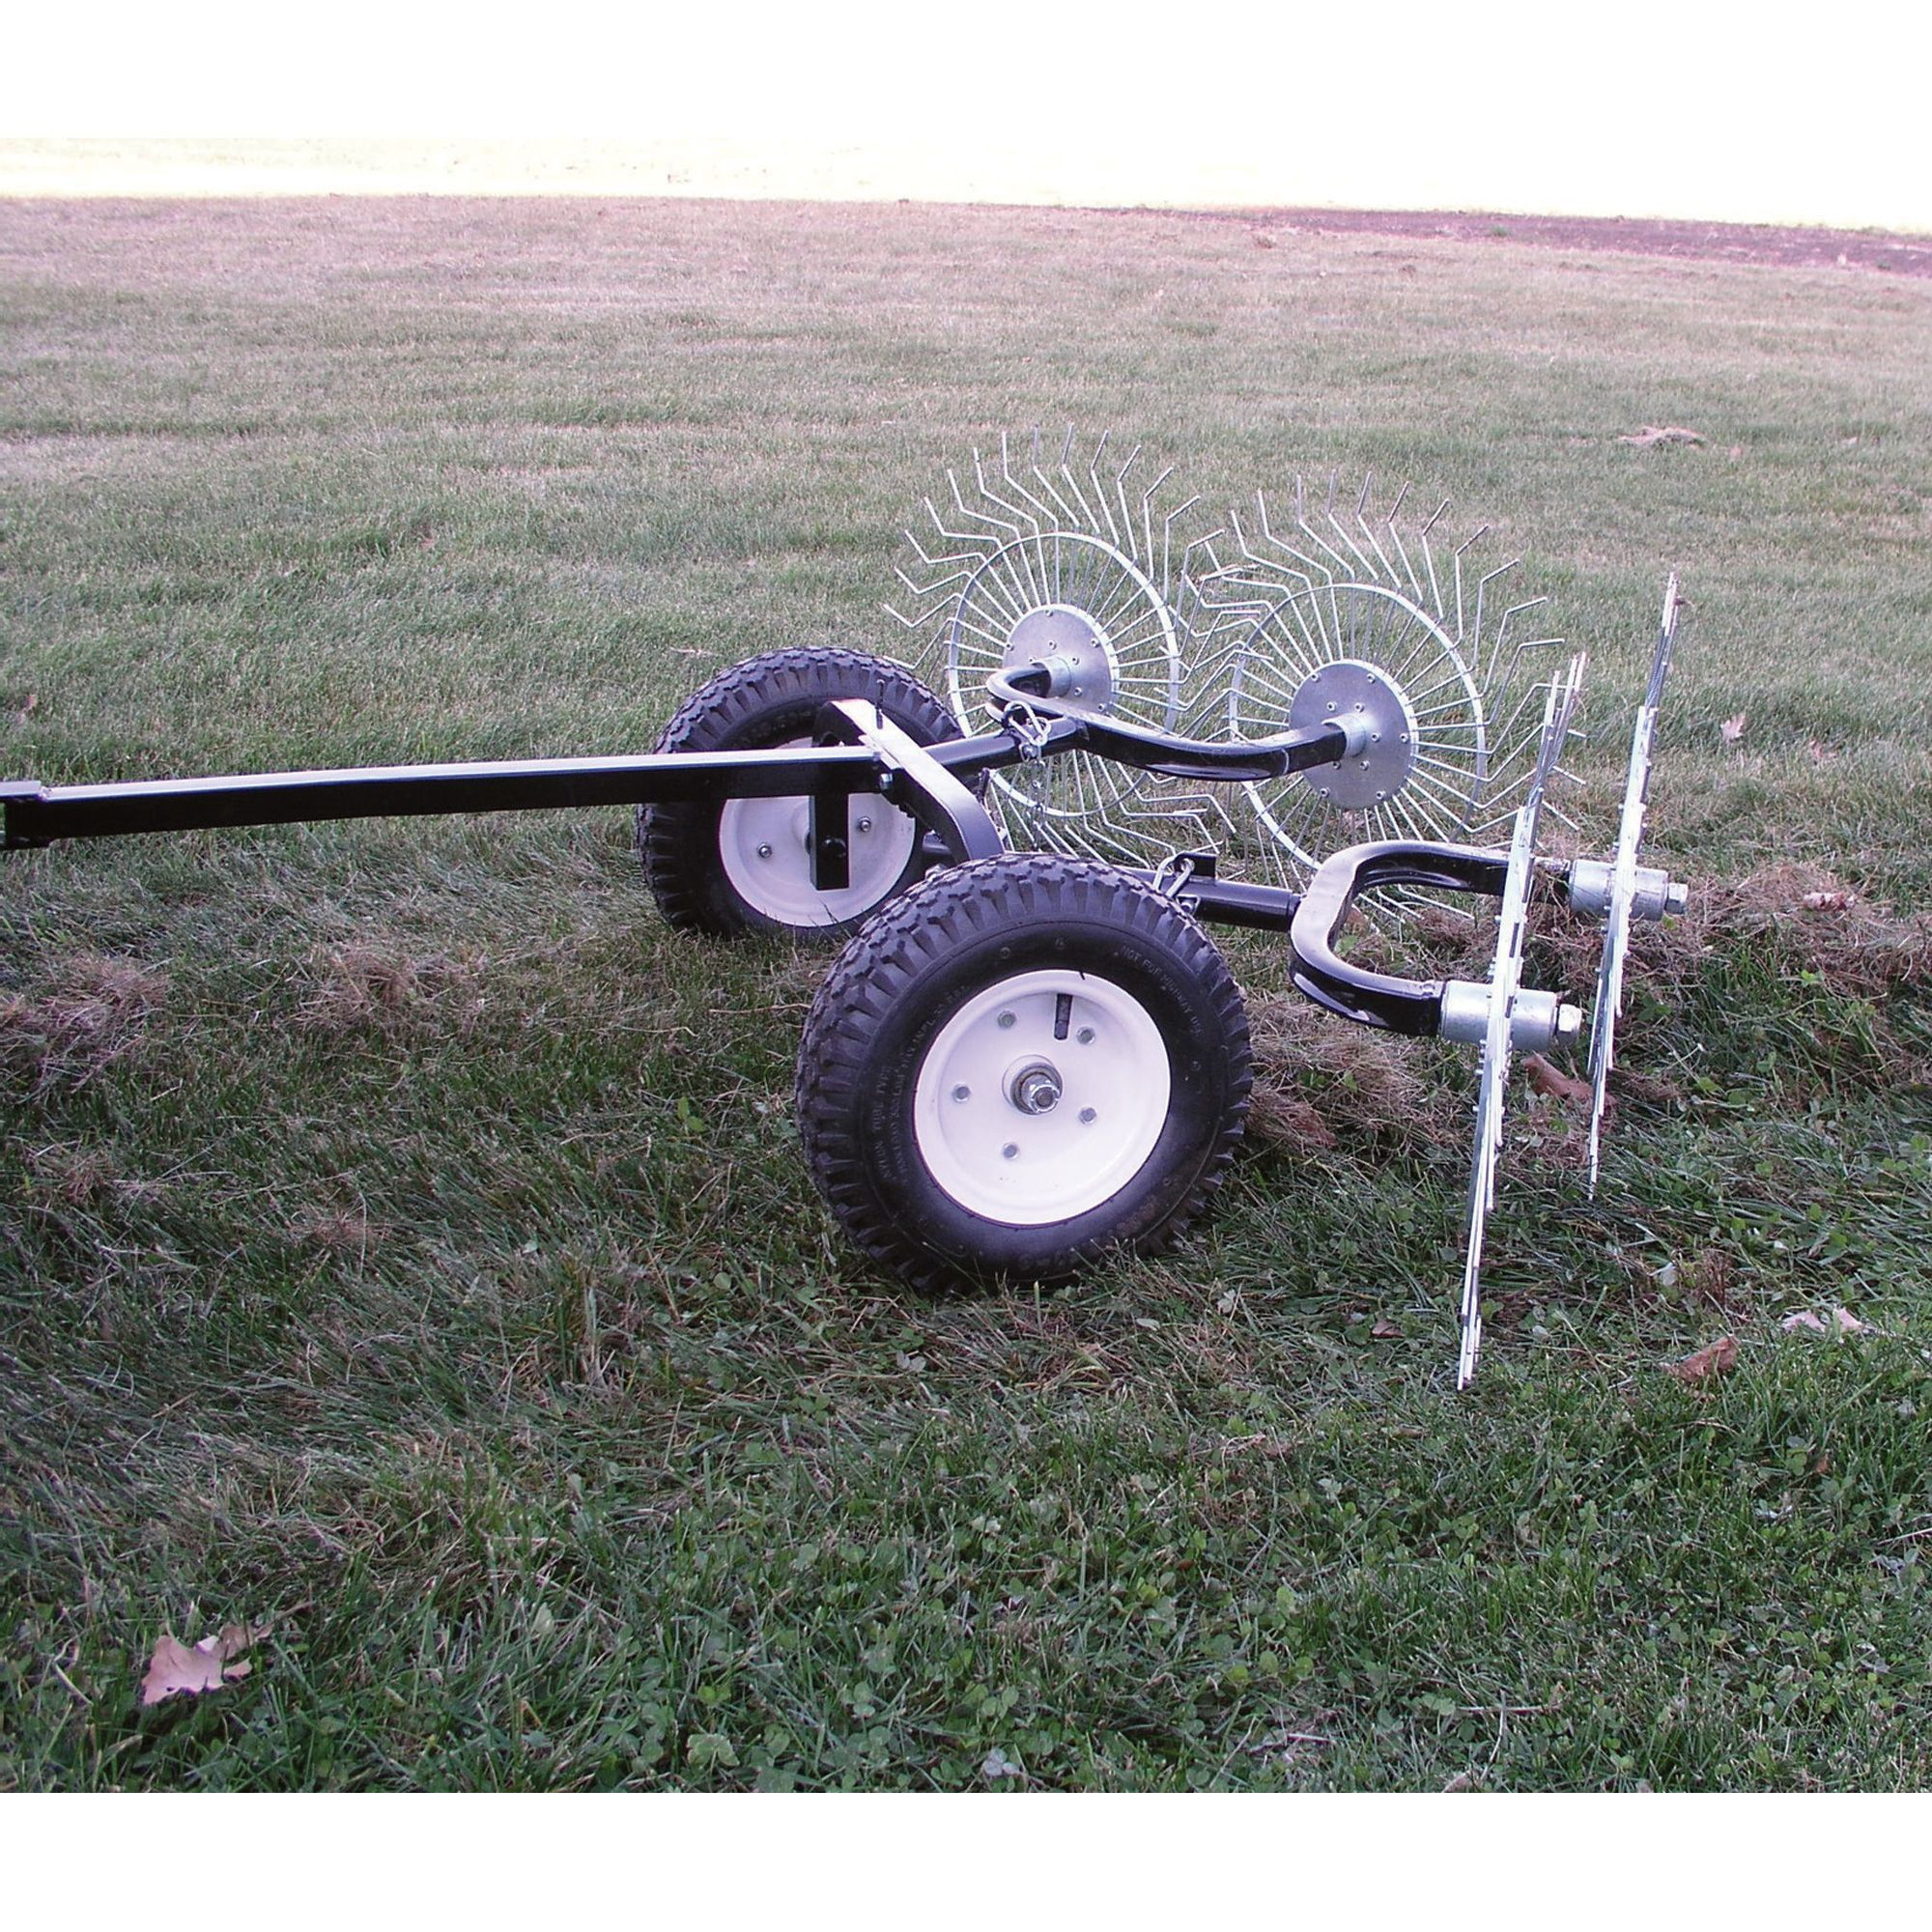 Pull Behind Rake For Lawn Tractor : The yard tuff pull behind dethatching rake turns your atv